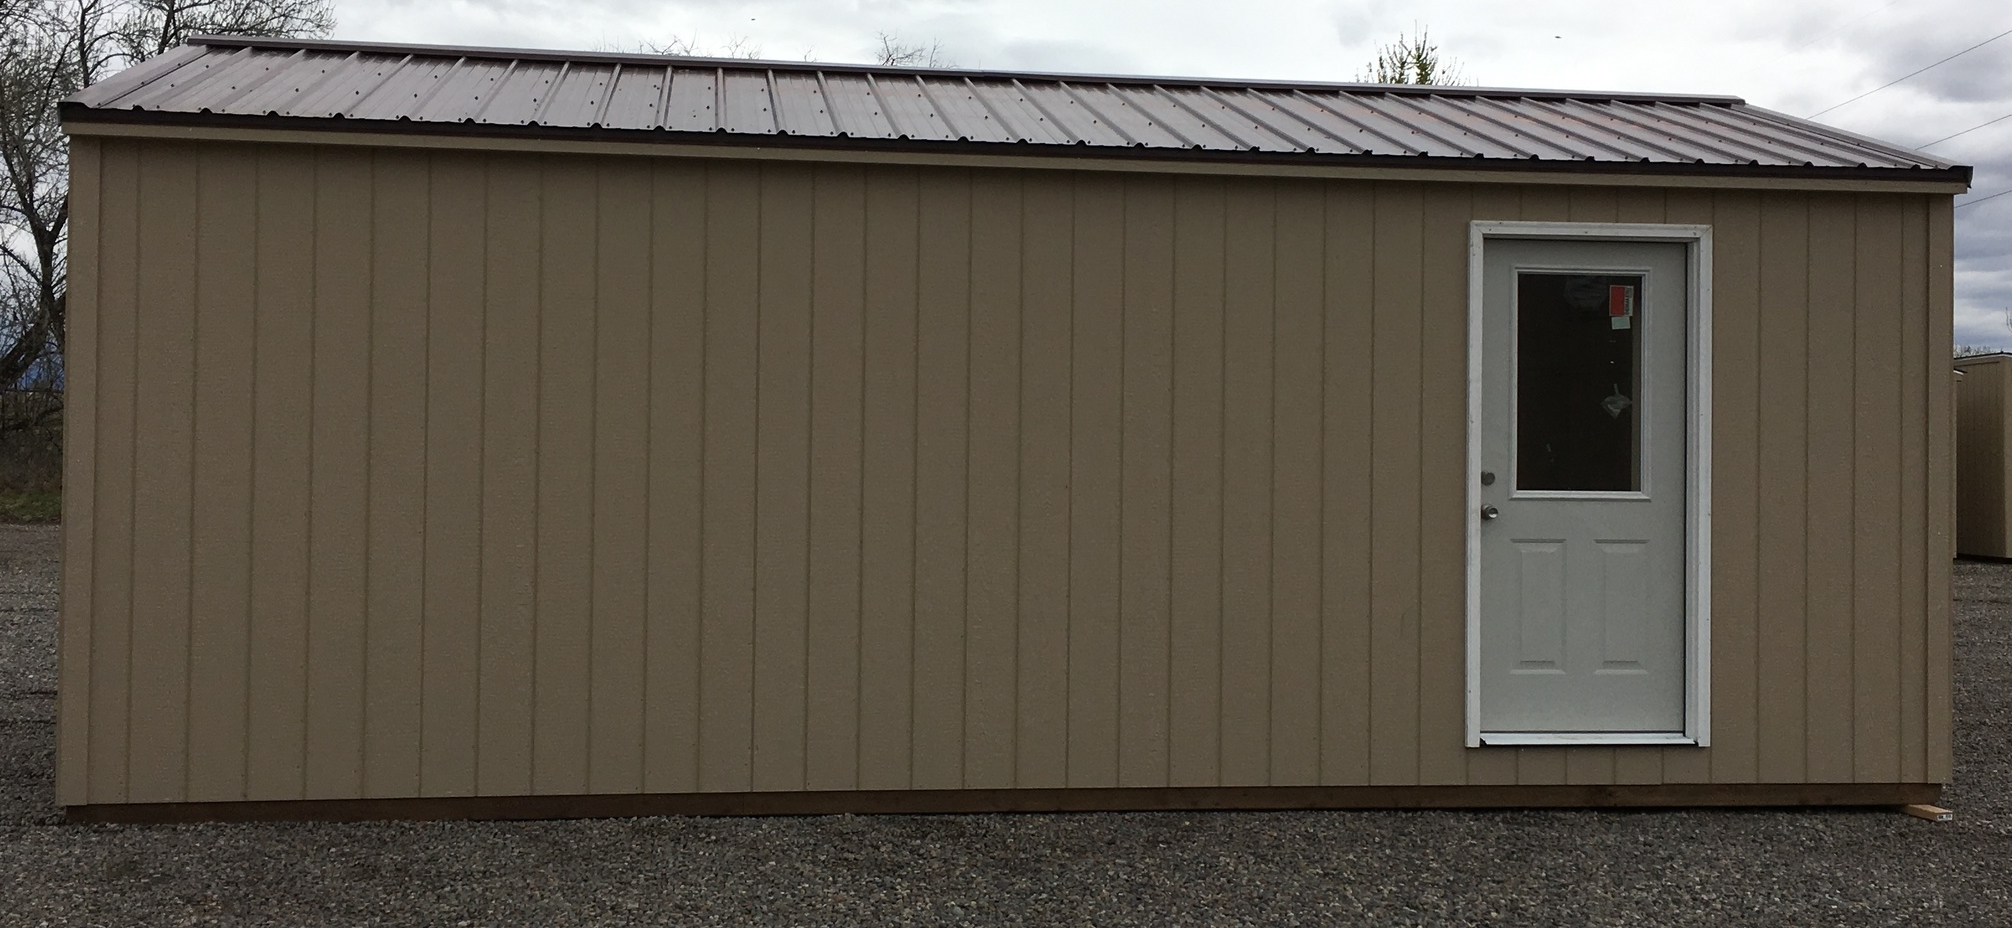 Shed with Metal Roof & House Door